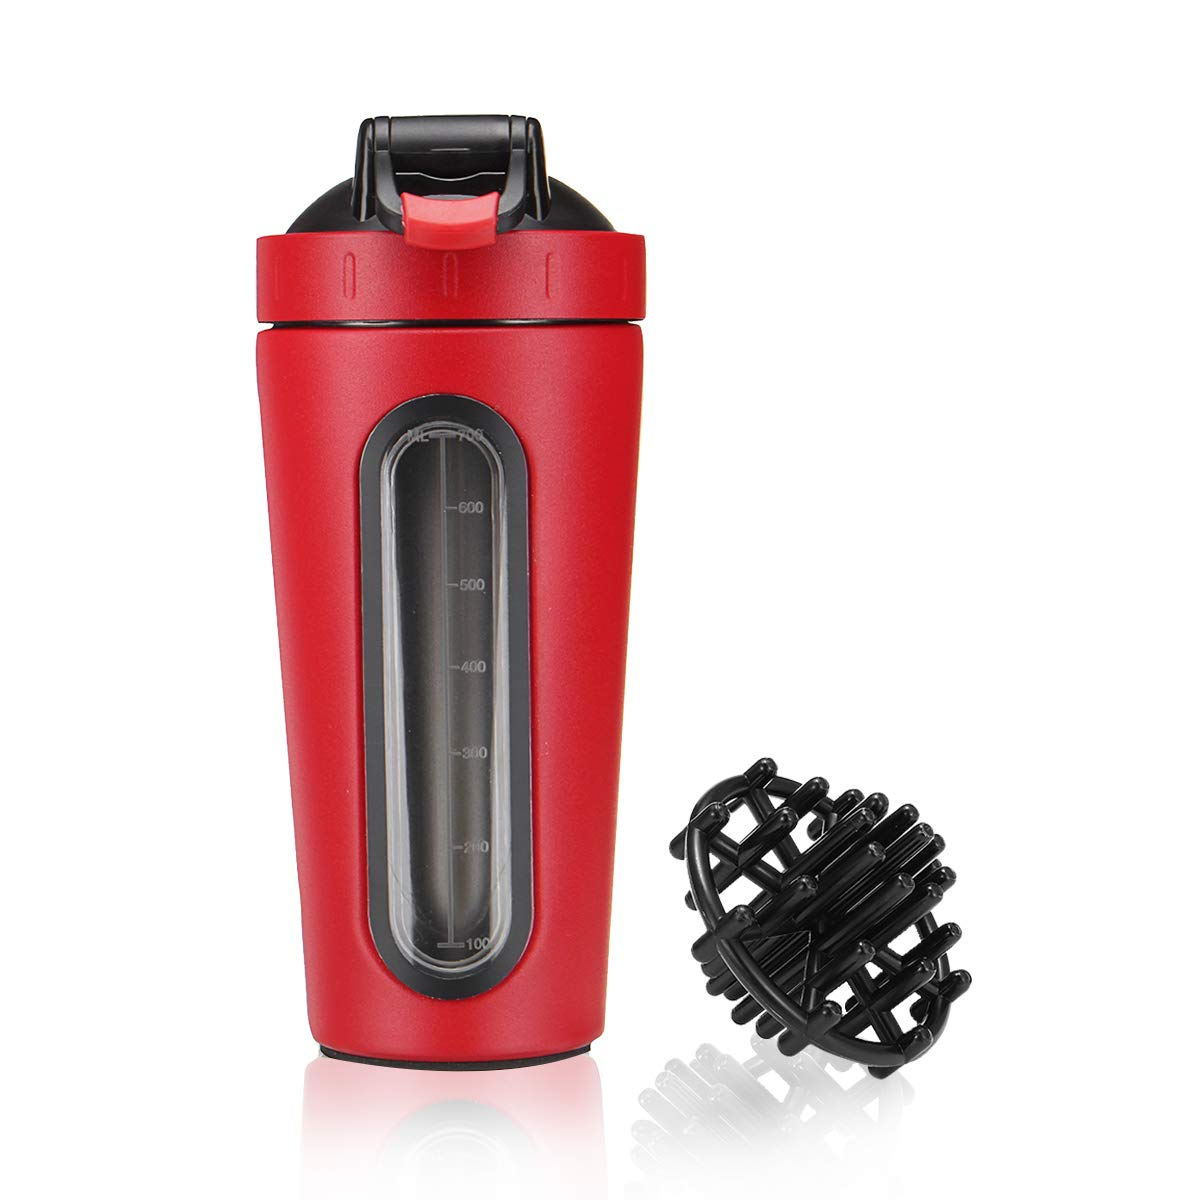 Slimerence Protein Shaker Bottle, Stainless Steel Mixer Bottle with Visual Window, Dishwasher Safe Leak Proof BPA Free Blender Cup for Gym Workout Fitness, 28oz Grind Red